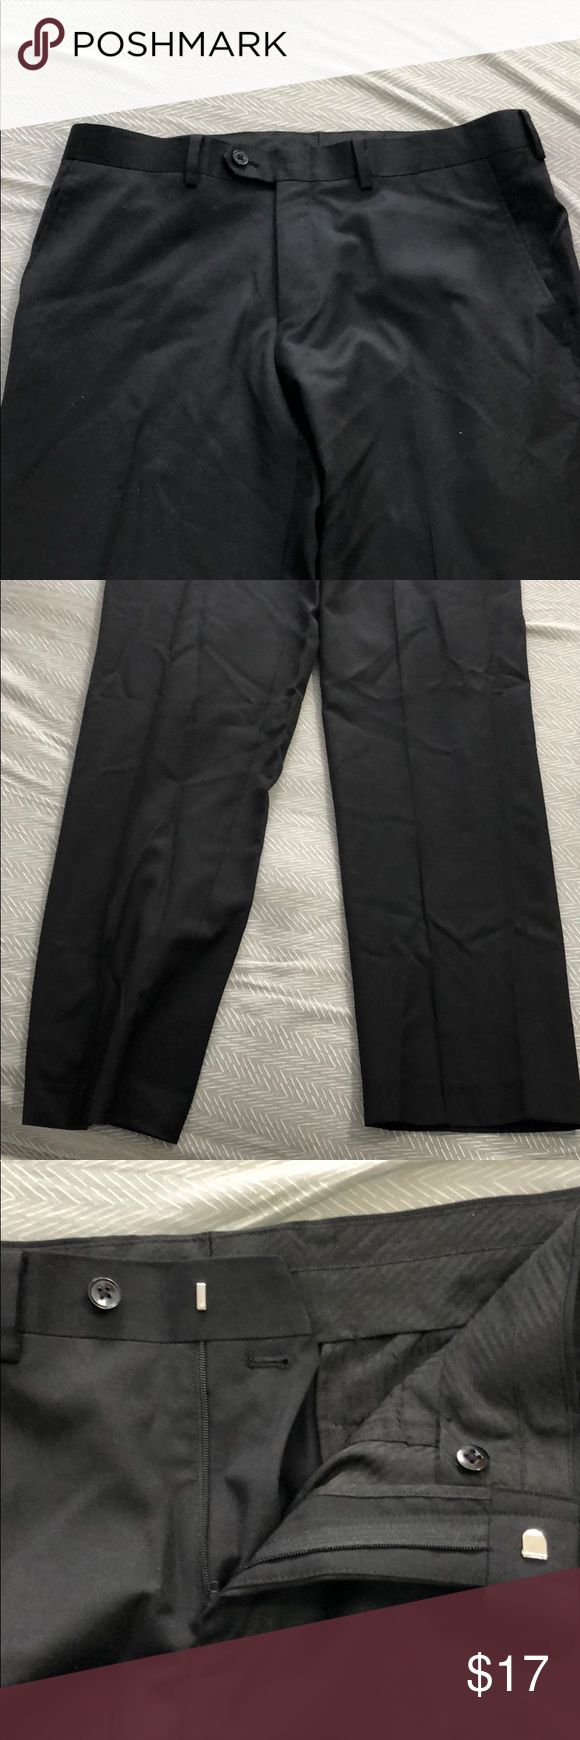 Bar III Slim Fit Dress Pants 100% wool. Great condition, worn once. Length from top to bottom is 38 inches, inseam is about 29 inches long, waist is 34 inches all around. Bar III Pants Dress